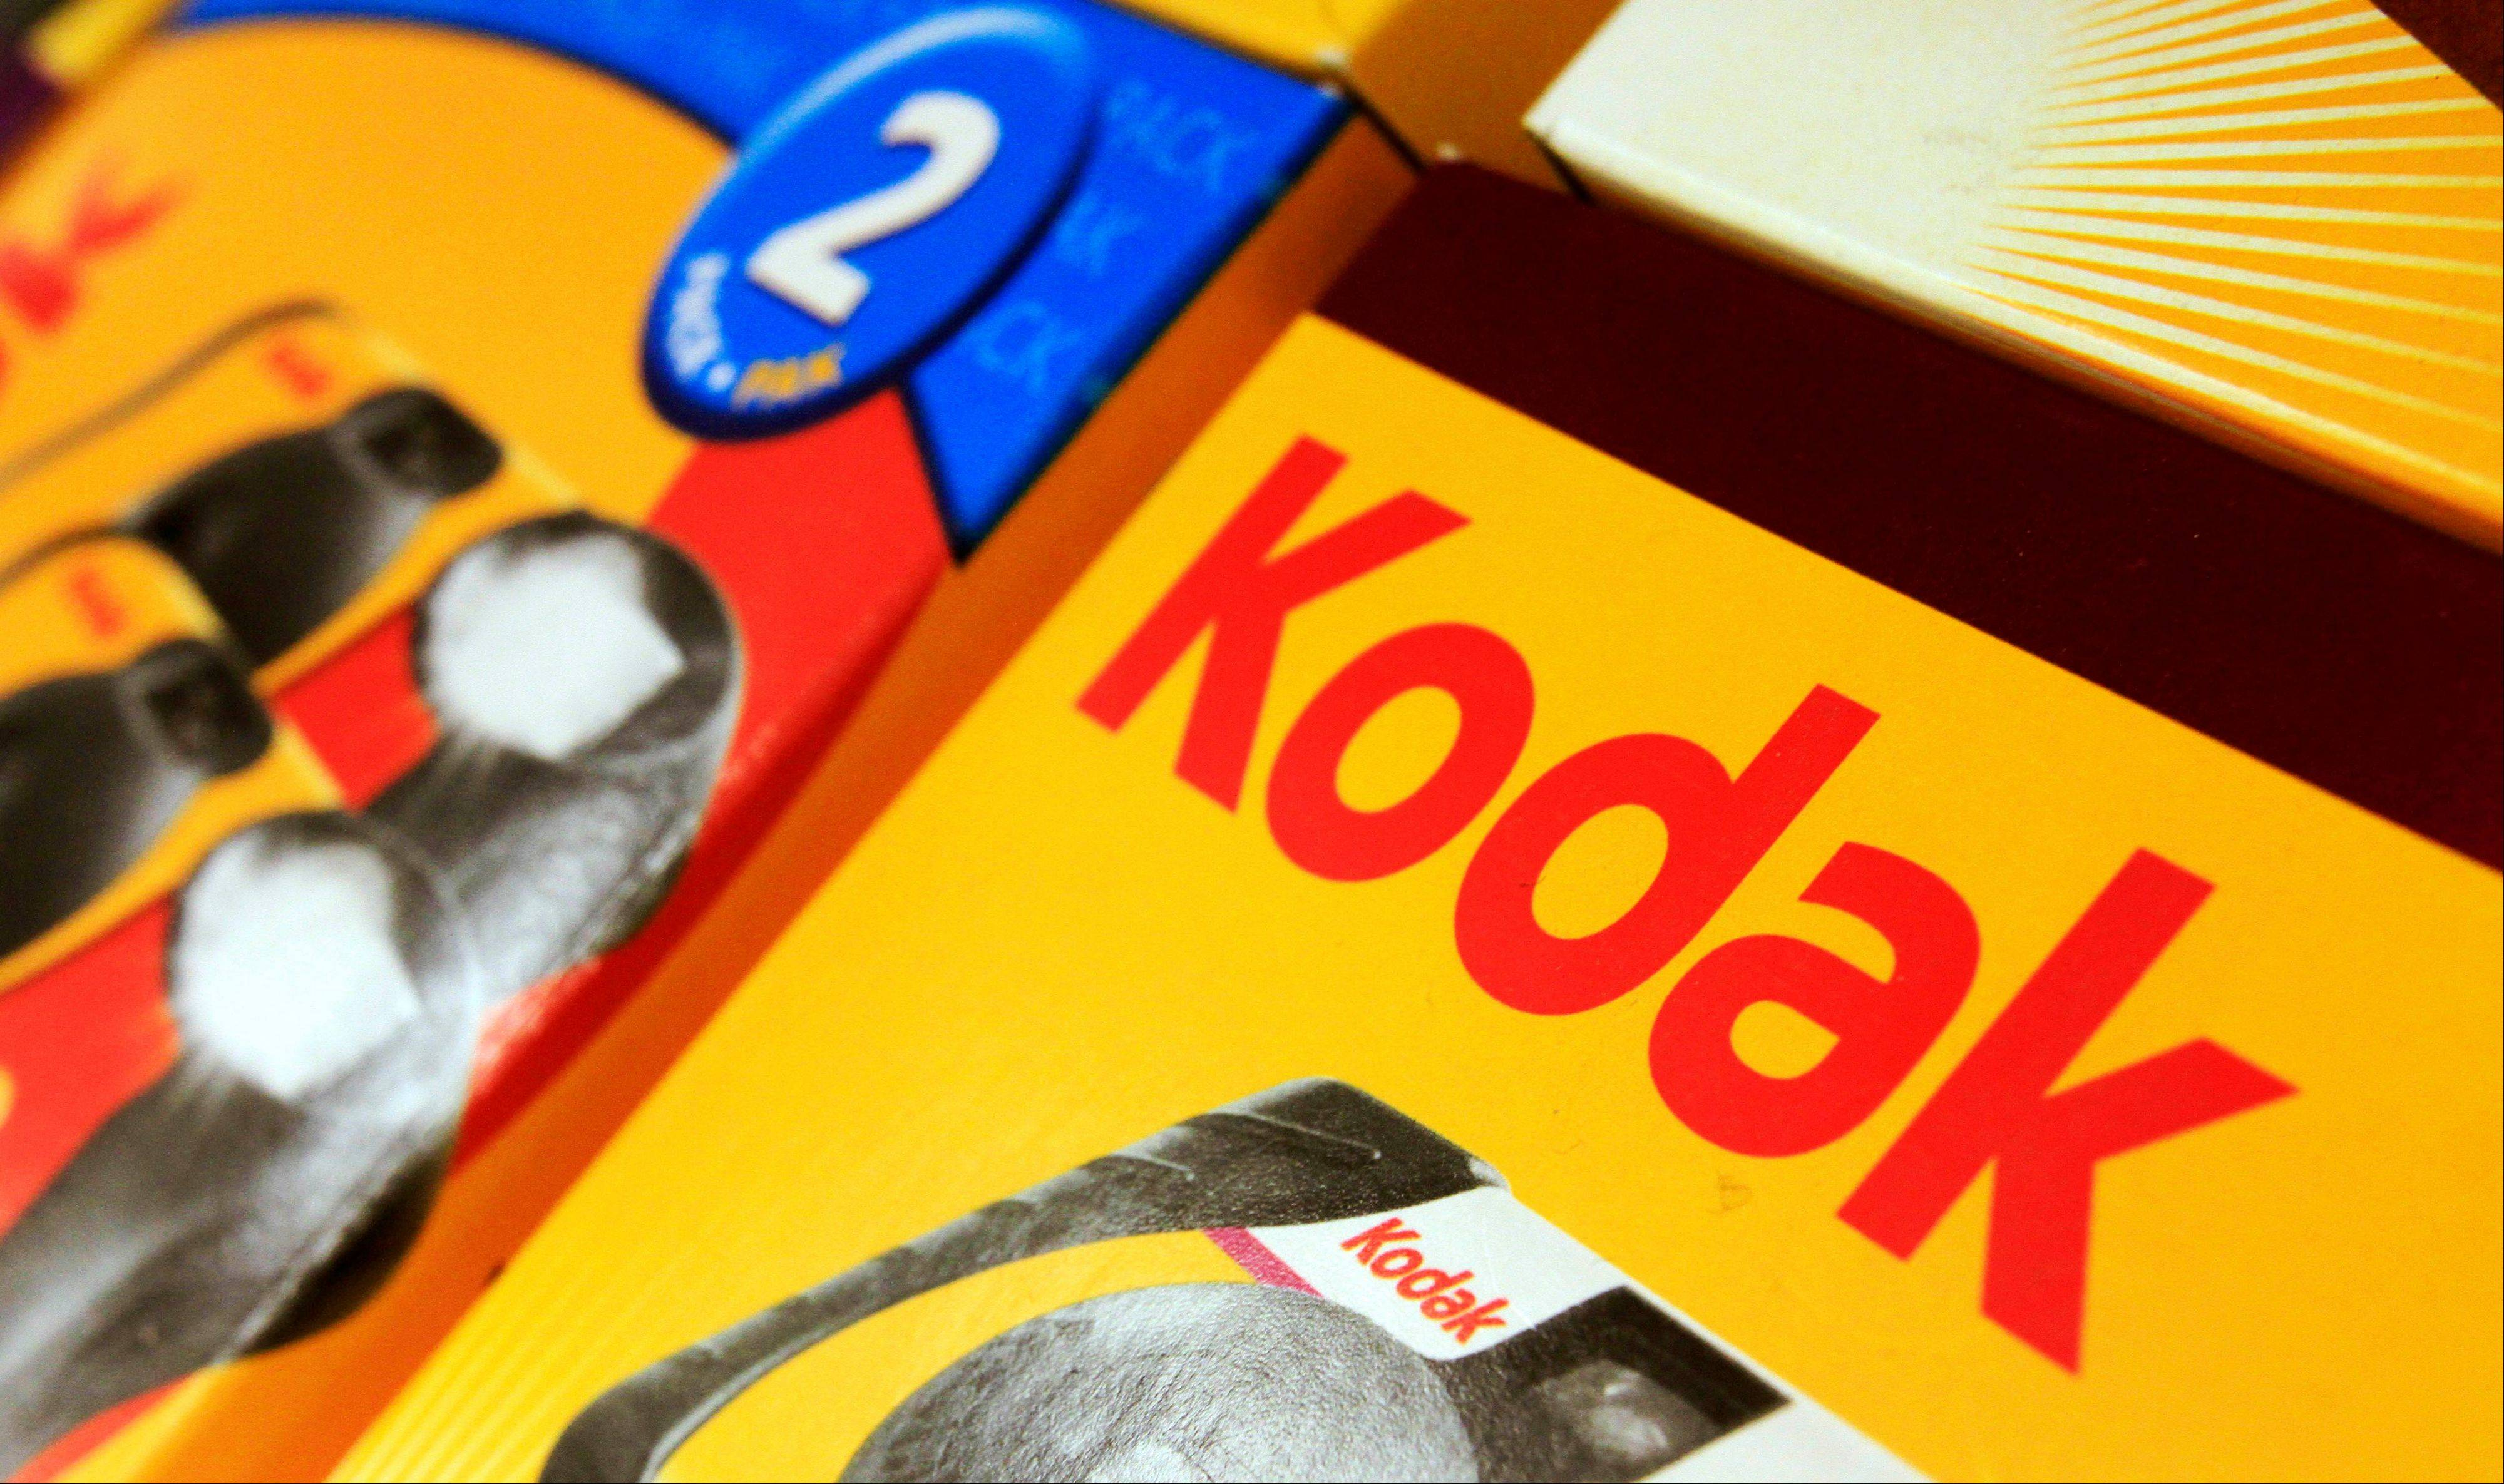 Eastman Kodak Co. said Wednesday it has asked a bankruptcy court judge to allow it to end retiree medical and some other benefits at the end of the year as part of its restructuring.